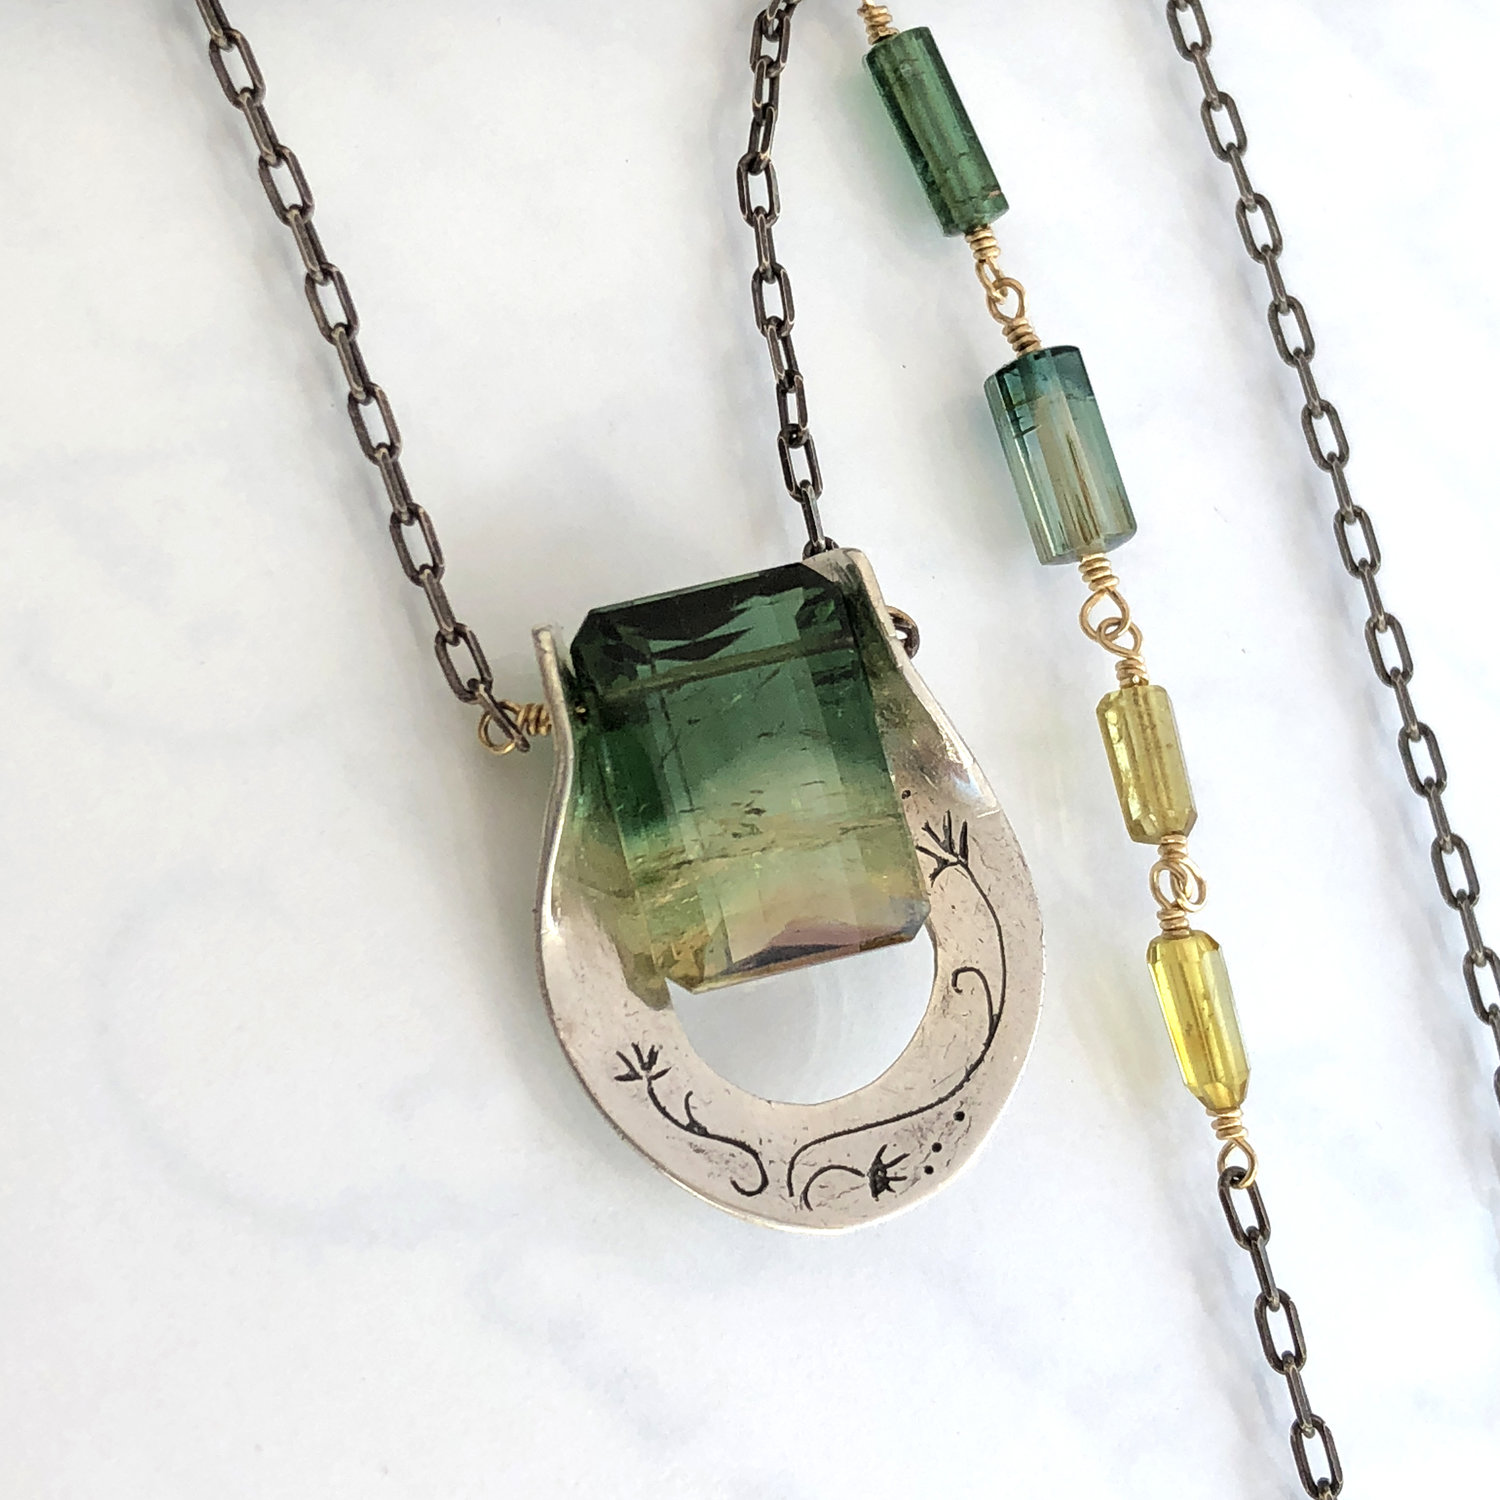 Large Faceted Watermelon Tourmaline Incredible Watermelon Tourmaline Pendant Tourmaline and Sterling Silver Necklace